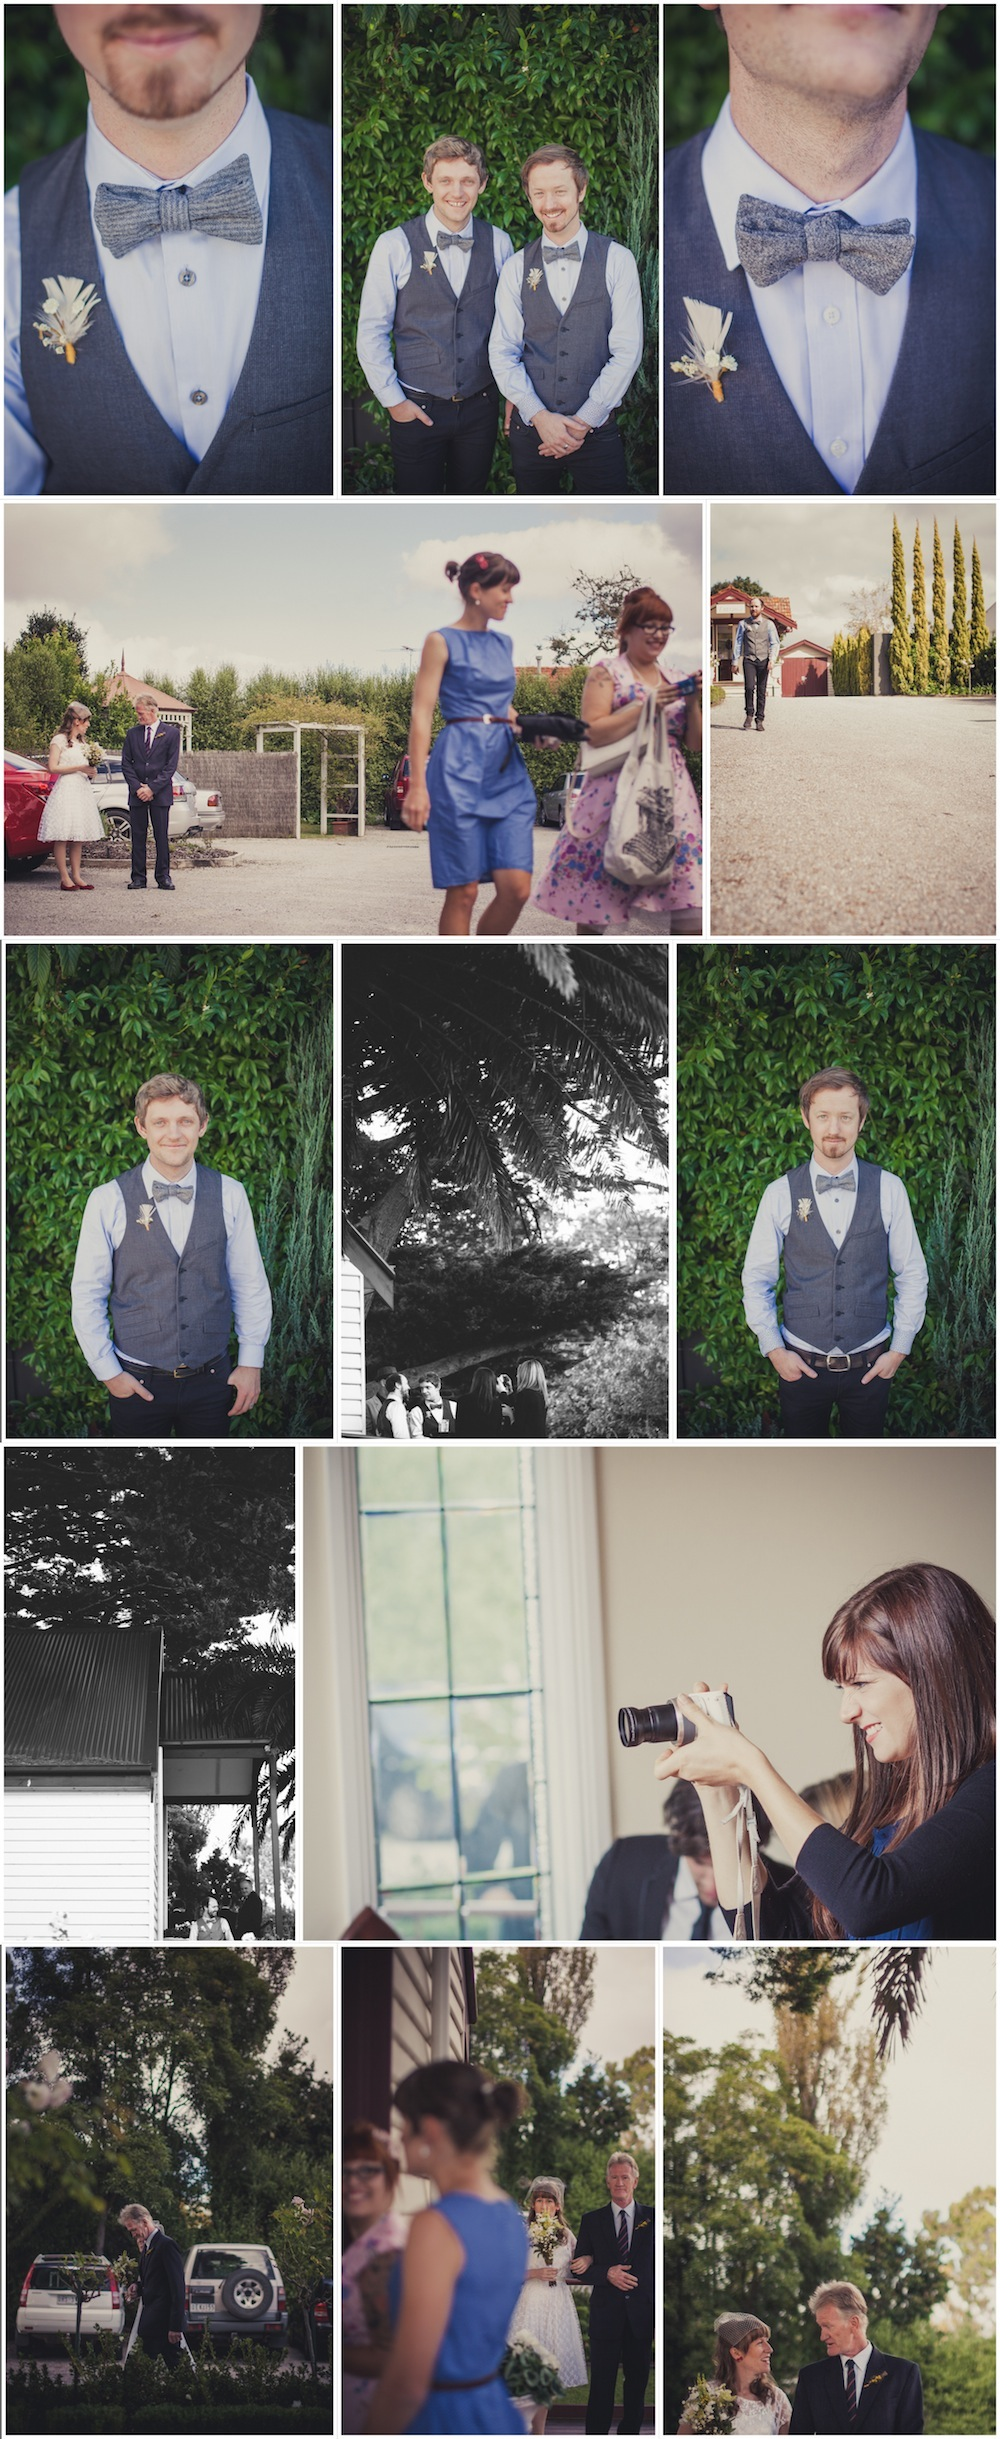 Sharni_&_Ryan_Vintage_Melbourne_Wedding-5